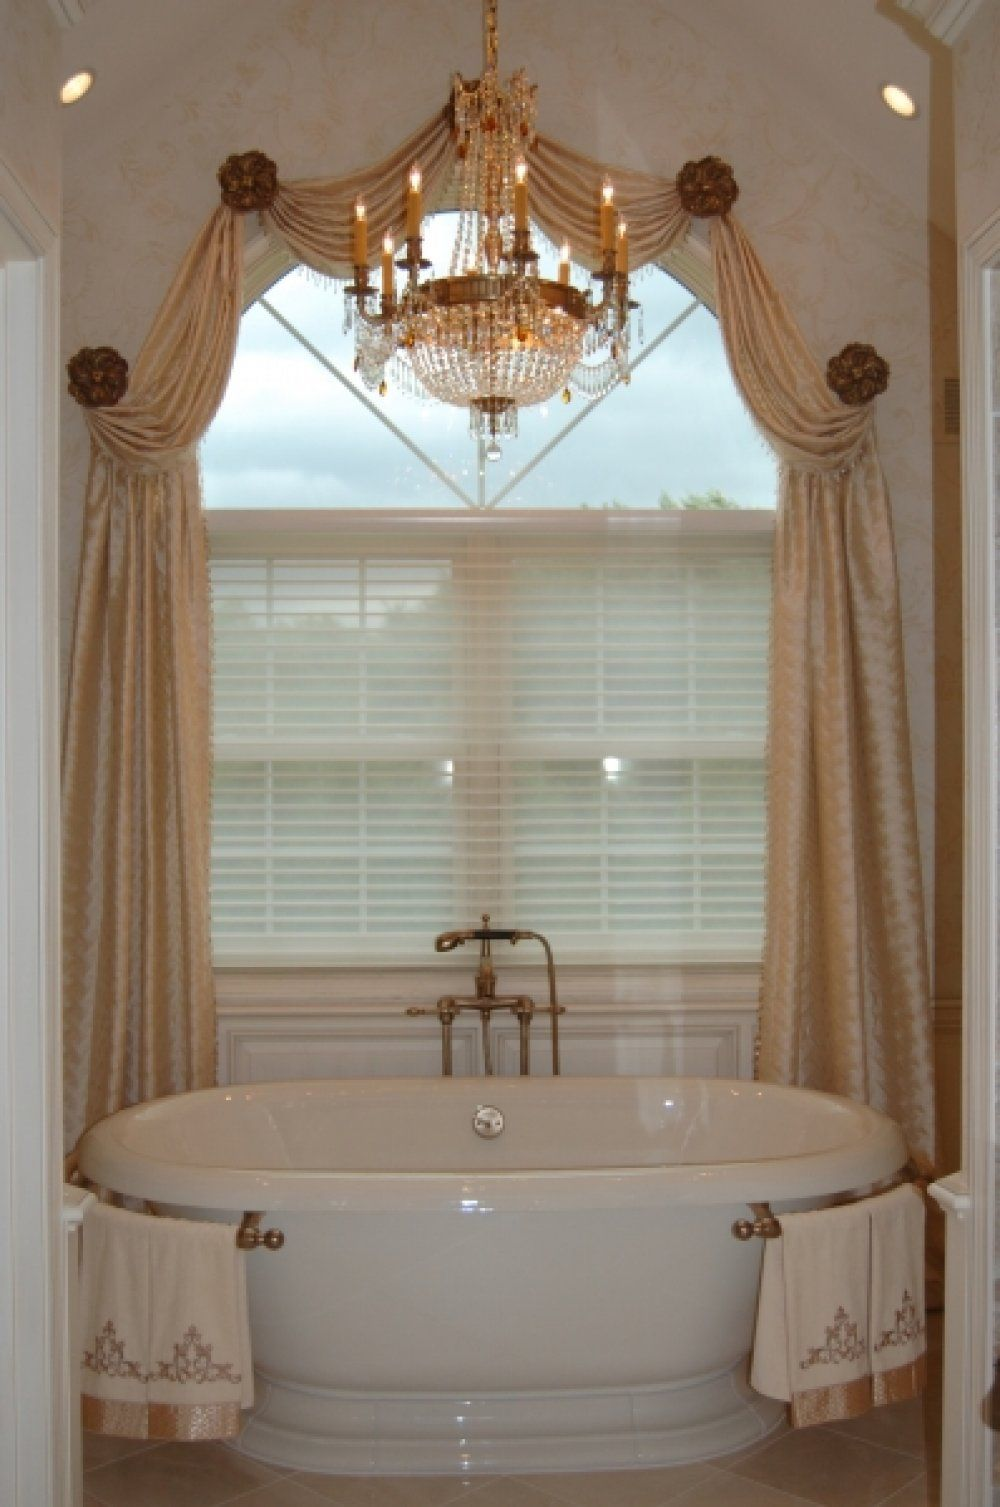 bathroom window treatments wow interiors windows pinterest habillages de fen tre. Black Bedroom Furniture Sets. Home Design Ideas